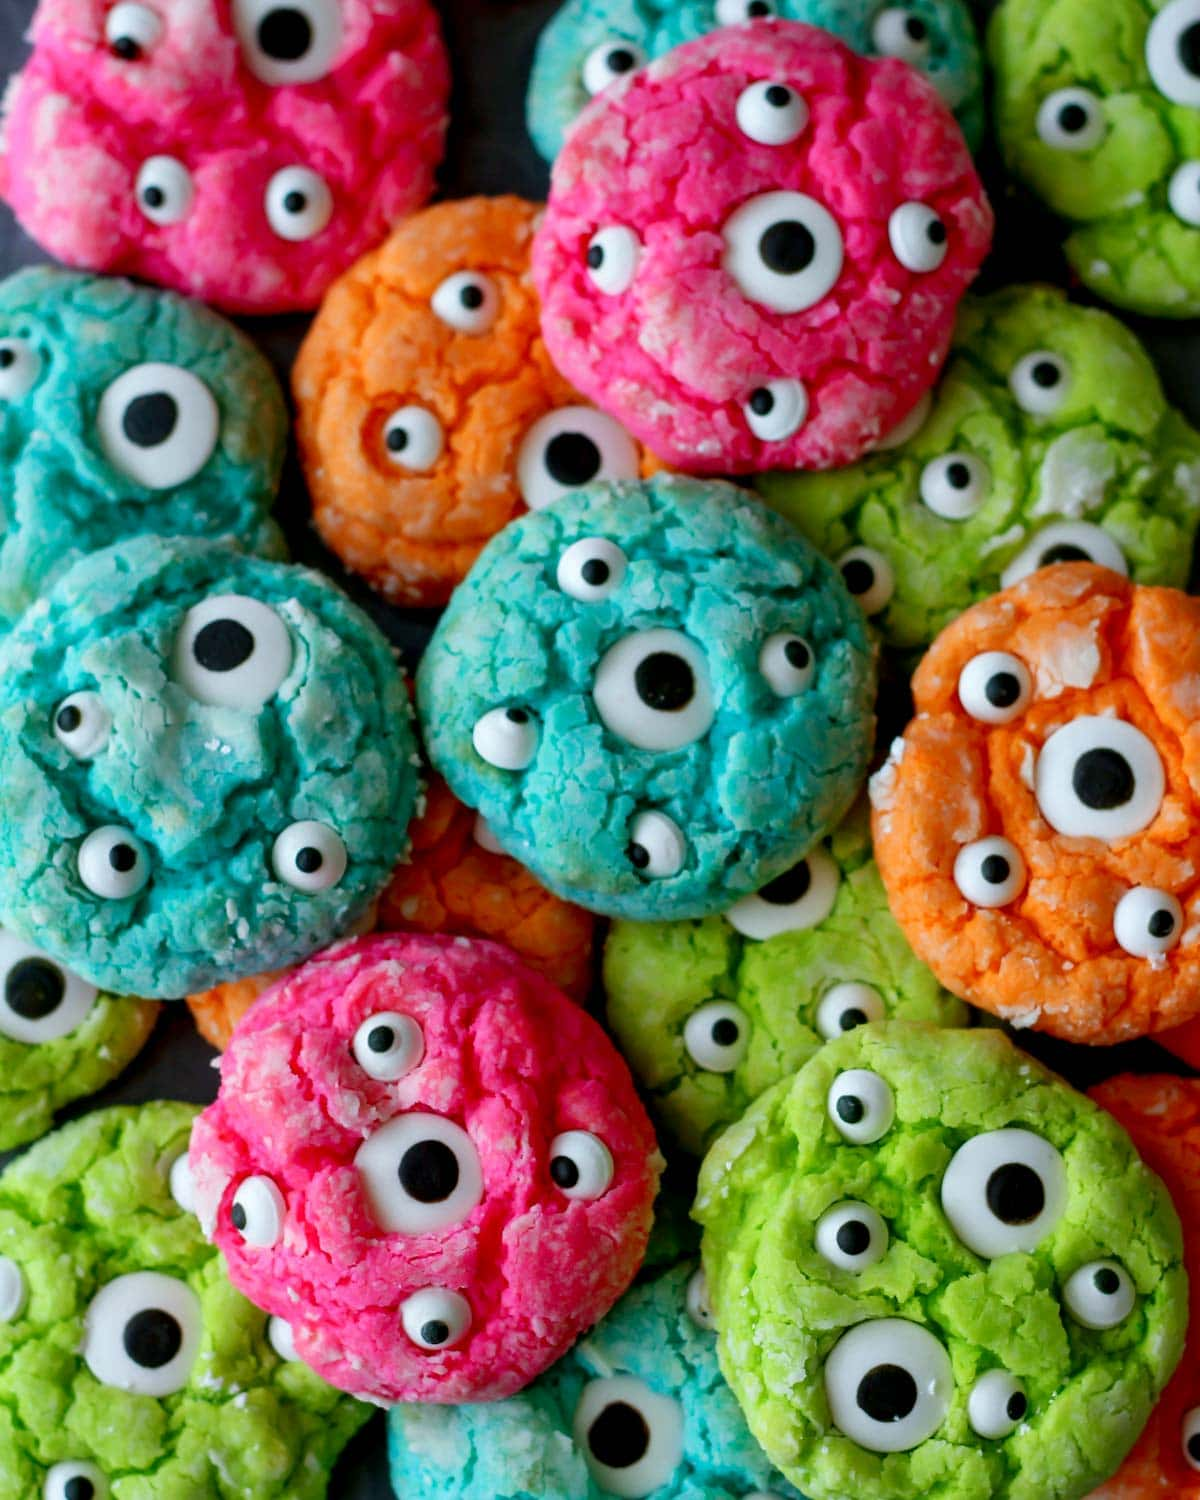 Gooey monster cookies dotted with eyeballs